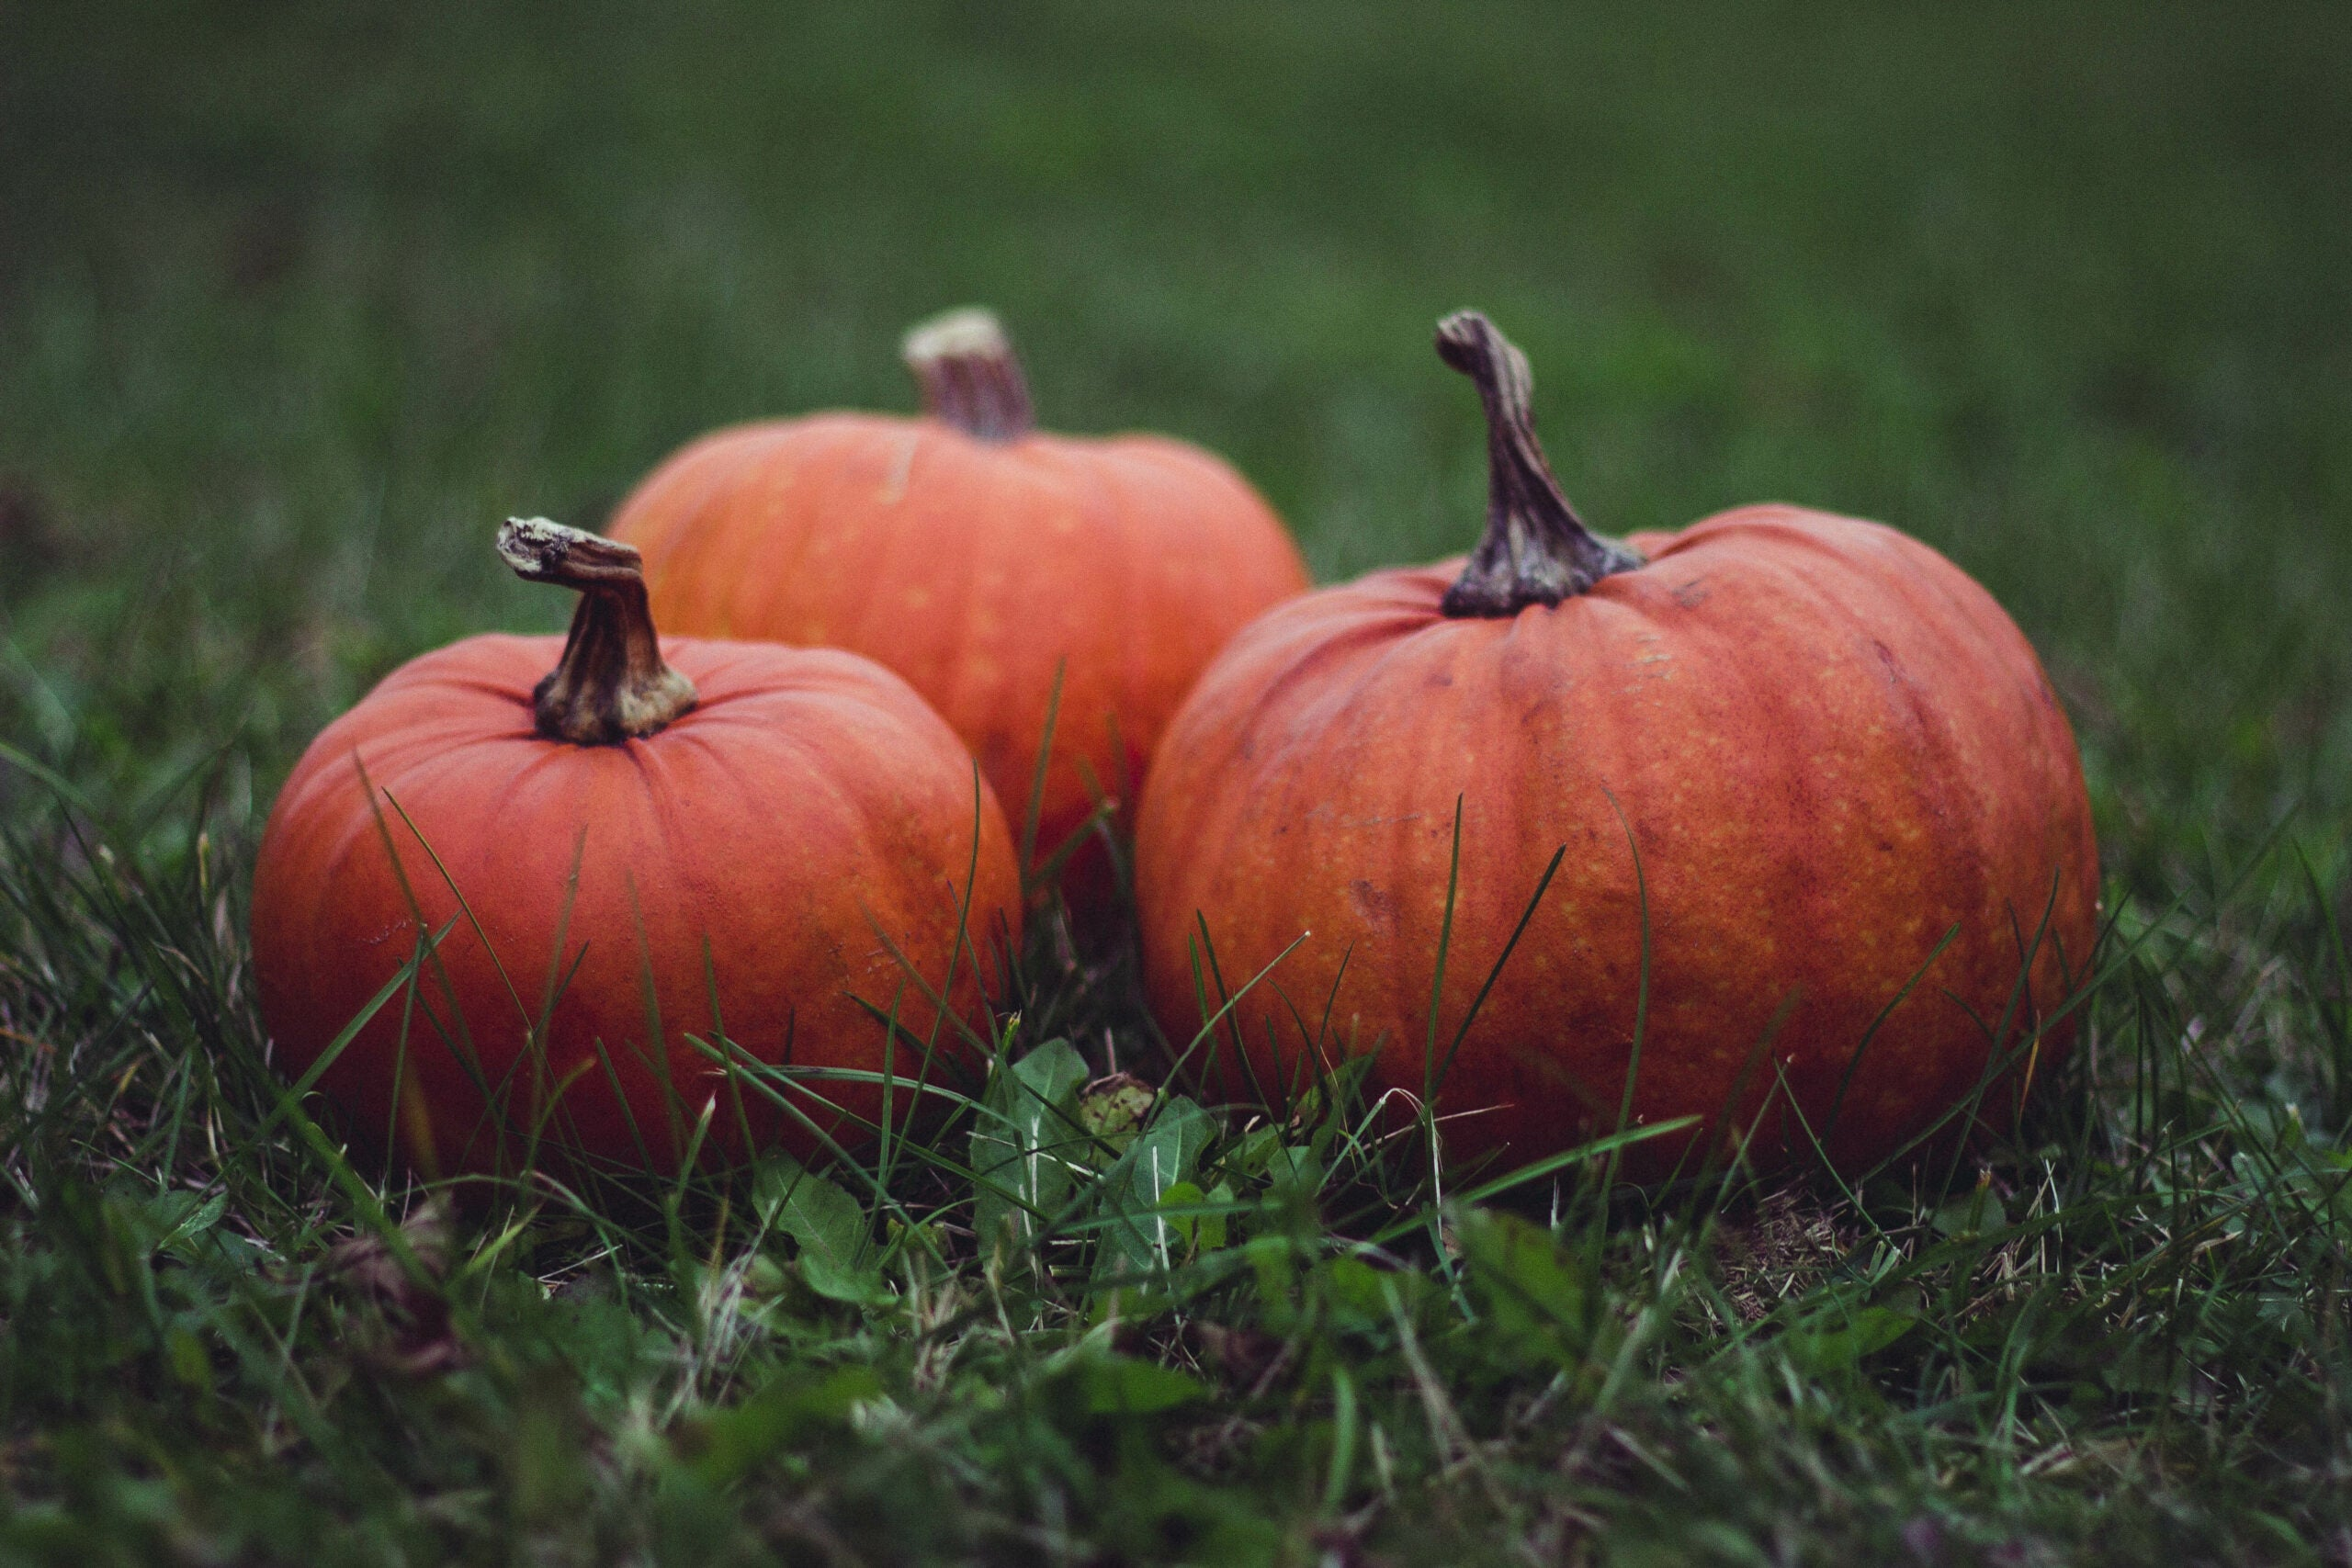 Pumpkins evolved from a literal genetic (monster) mash-up